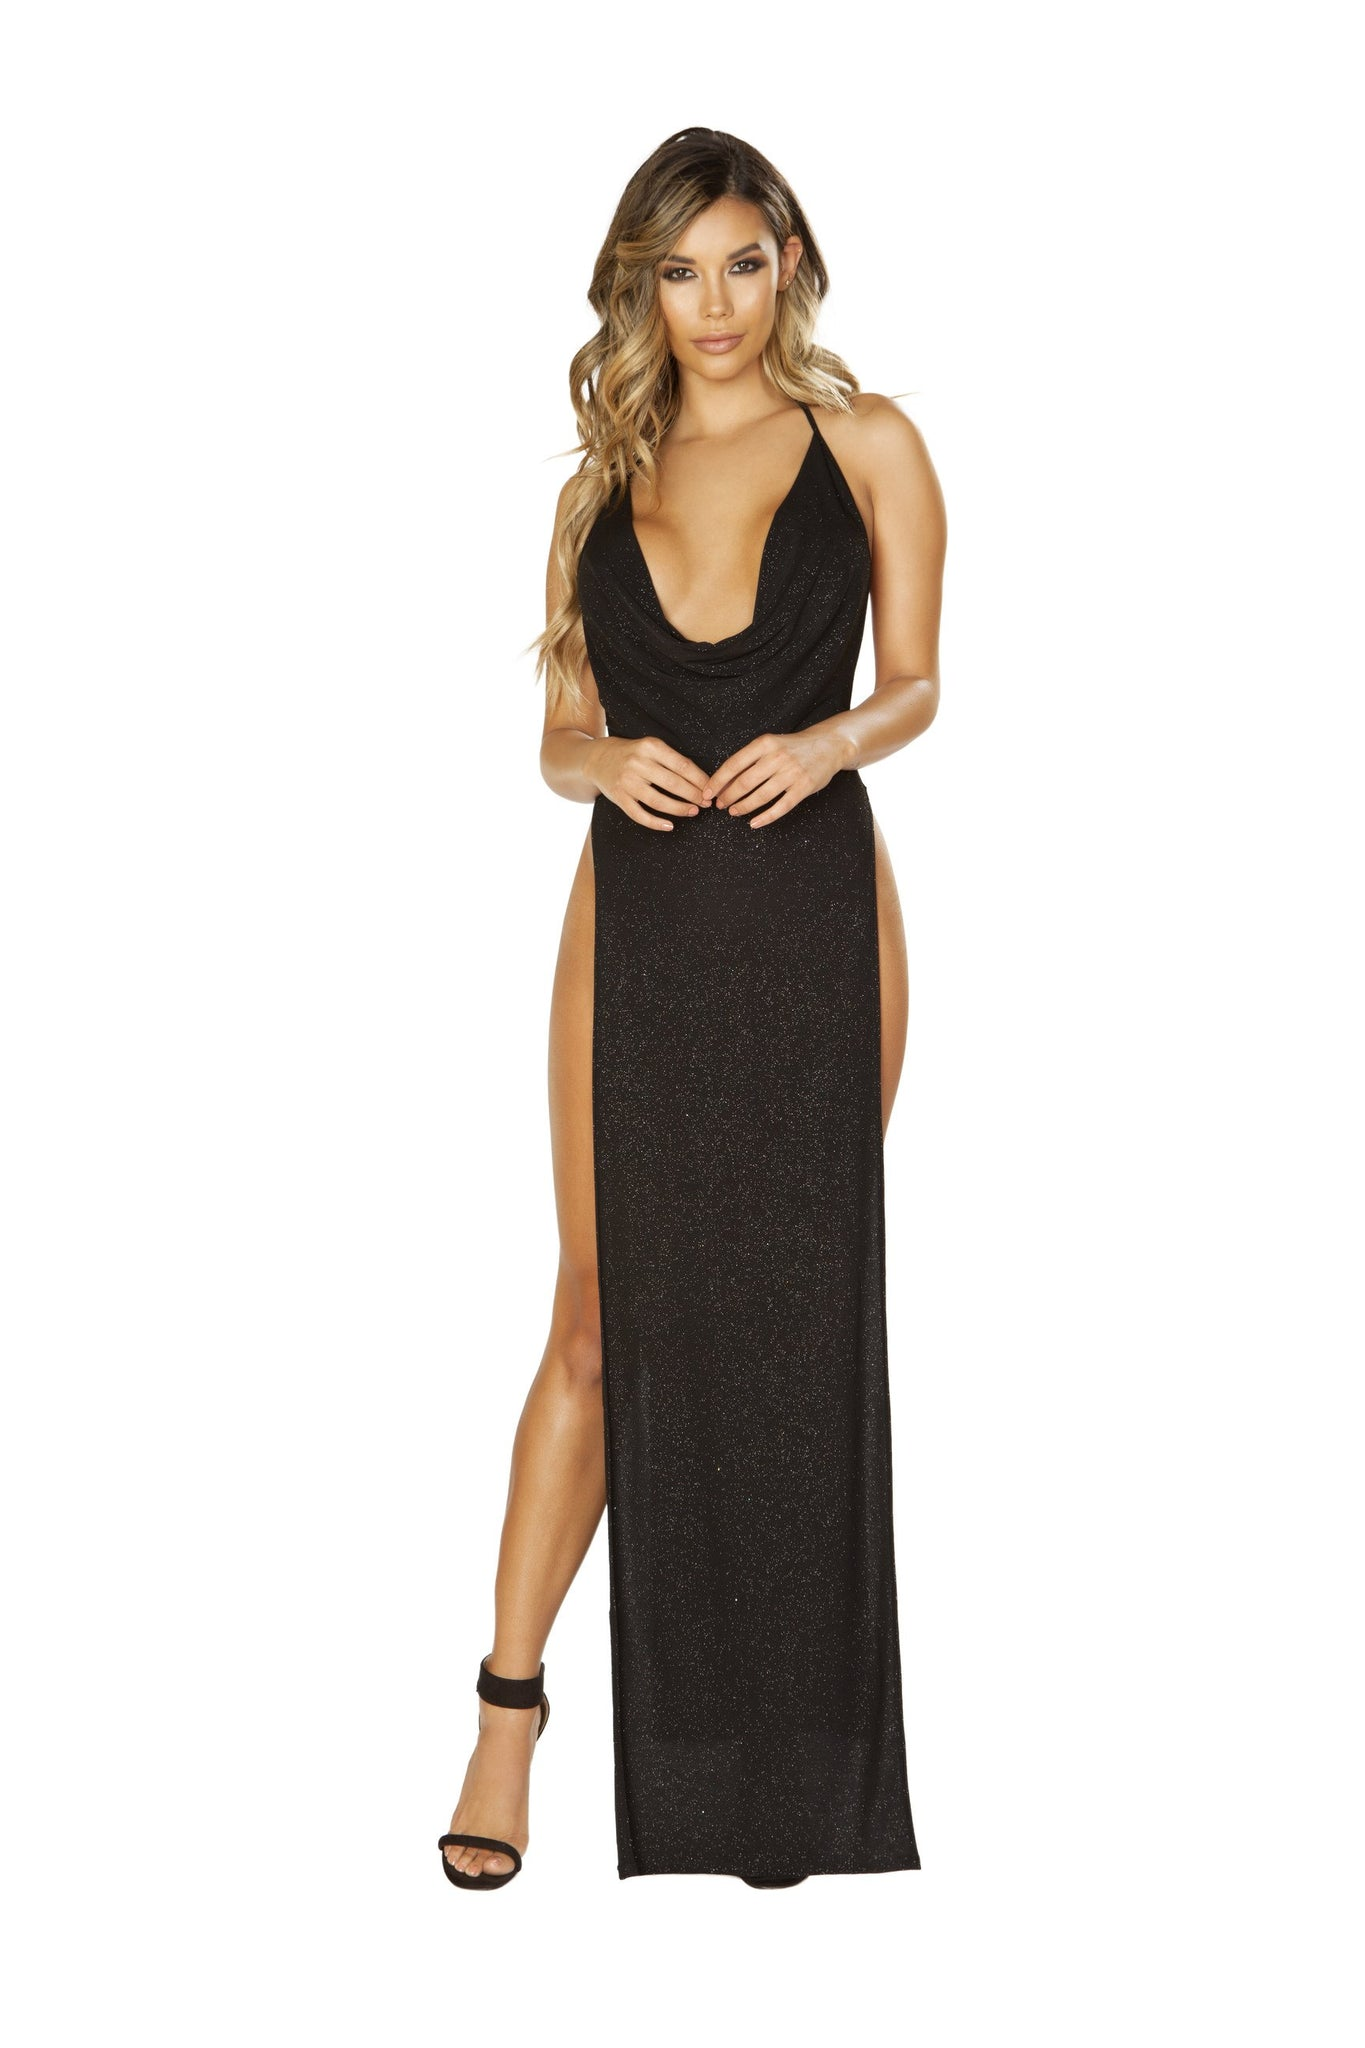 3665 Glittery Shimmer Cowl Neck Maxi Length Dress with High Slits